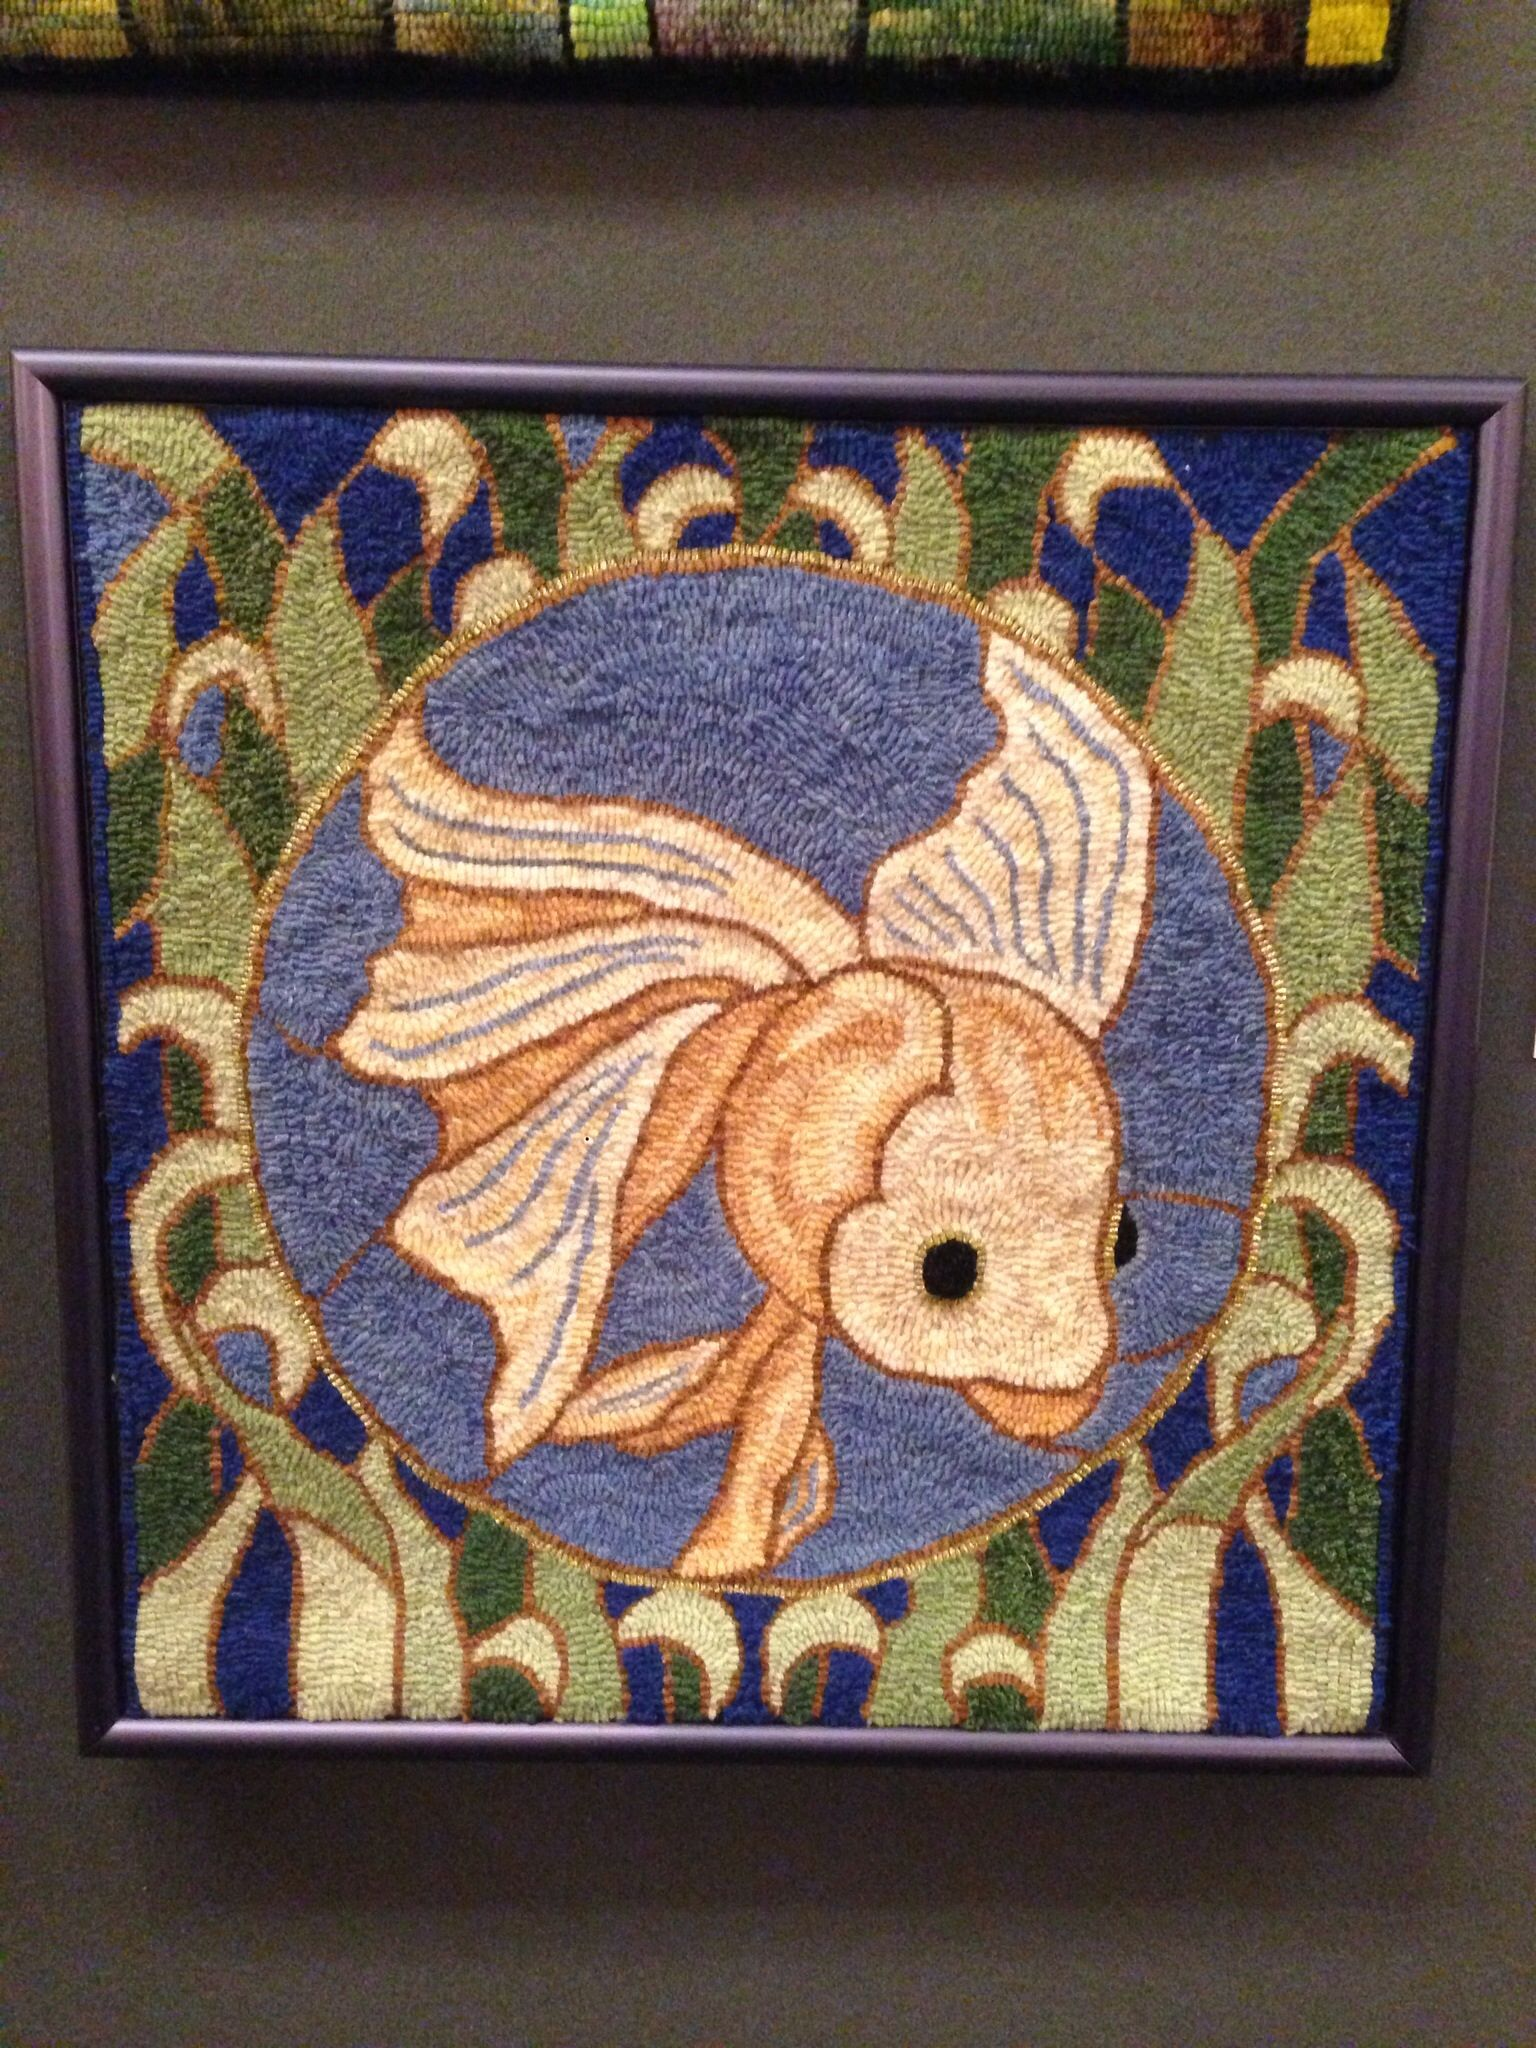 P836 Stained Glass Fish Rug Hooking Patterns Hooked Rugs Primitive Stitching Art